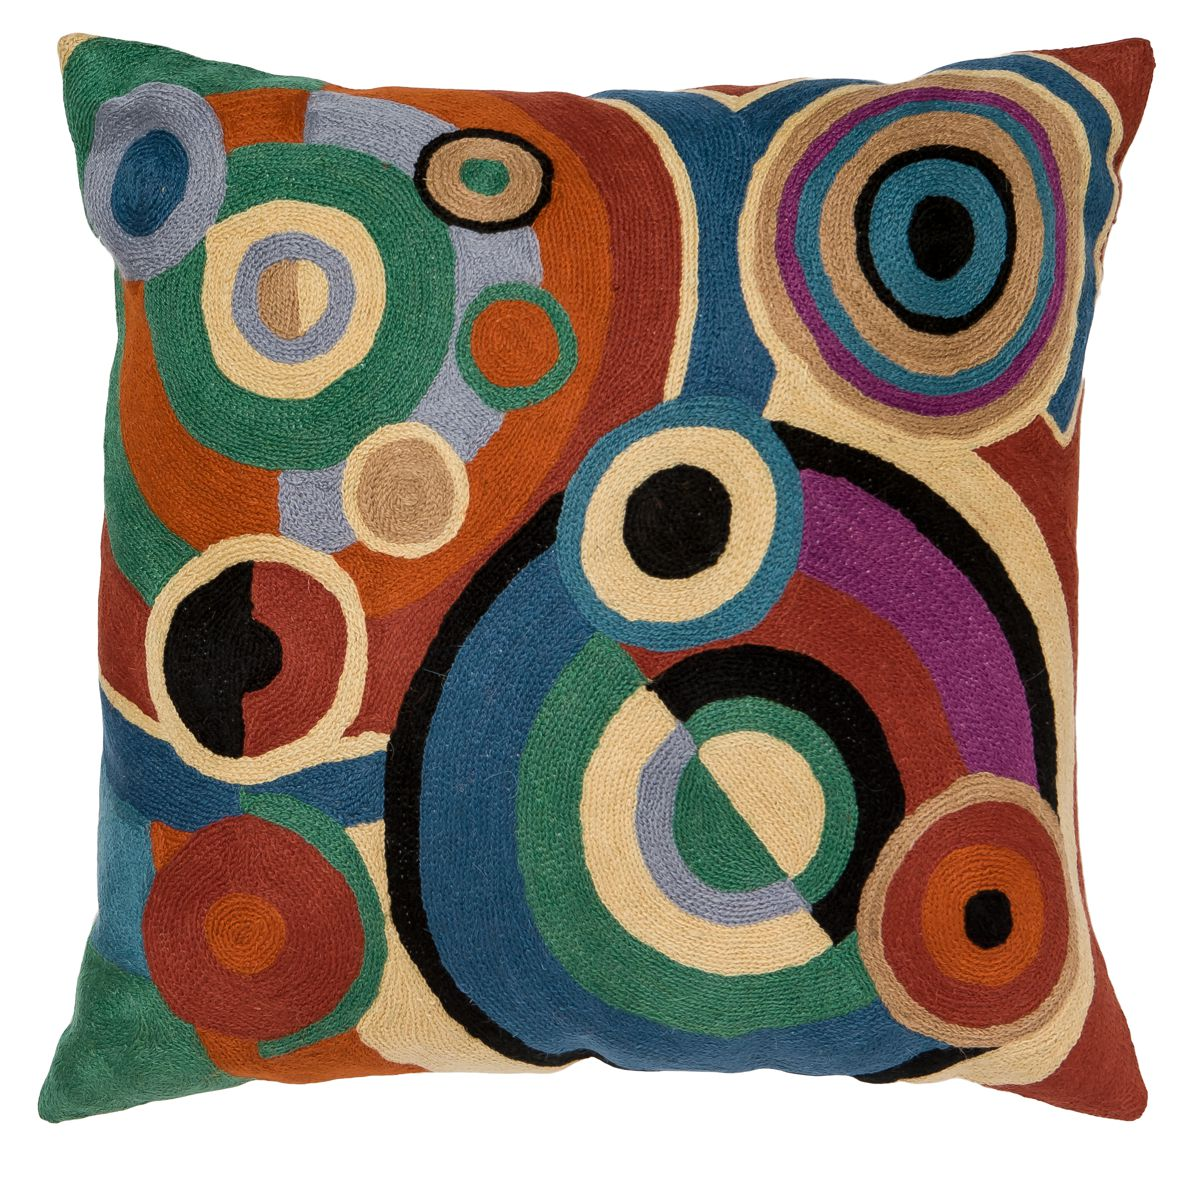 Zaida Delaunay R Paris Cushion 20 50cm x 50cm (20 x 20 inches)